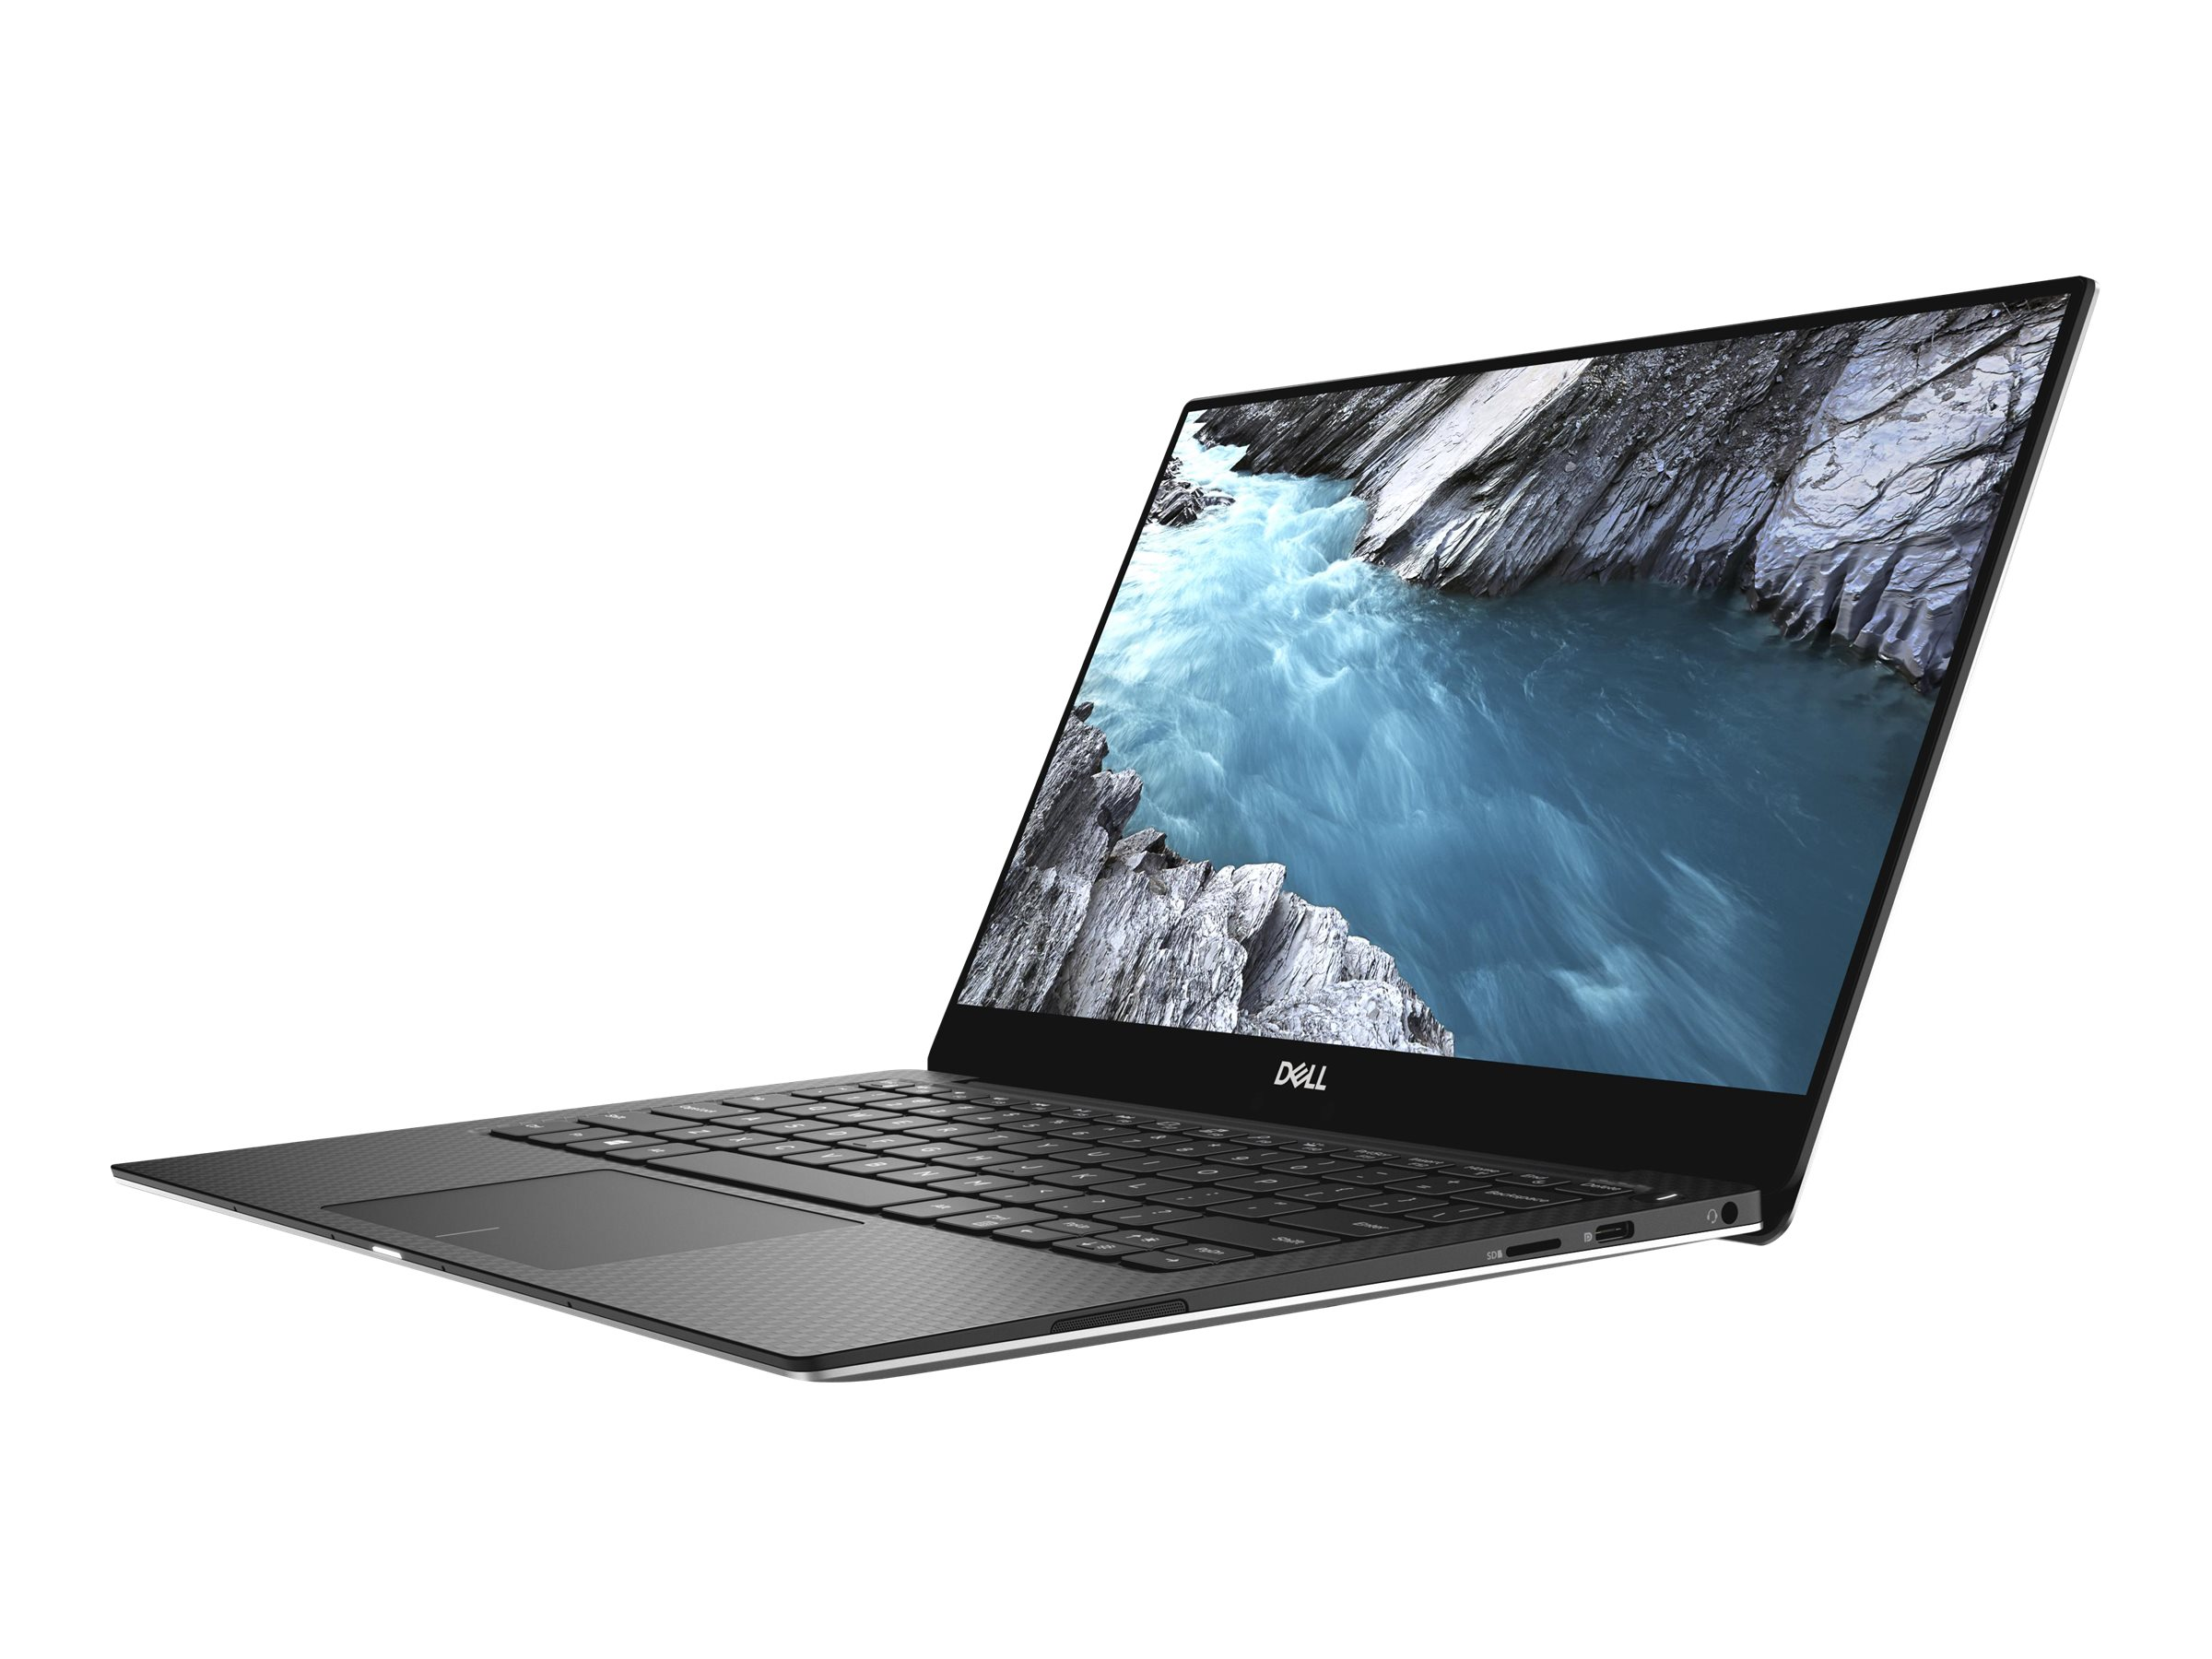 """Dell XPS 13 9370 - 13.3"""" - Core i5 8250U - 8 GB RAM - 256 GB SSD - with 1-year ProSupport"""